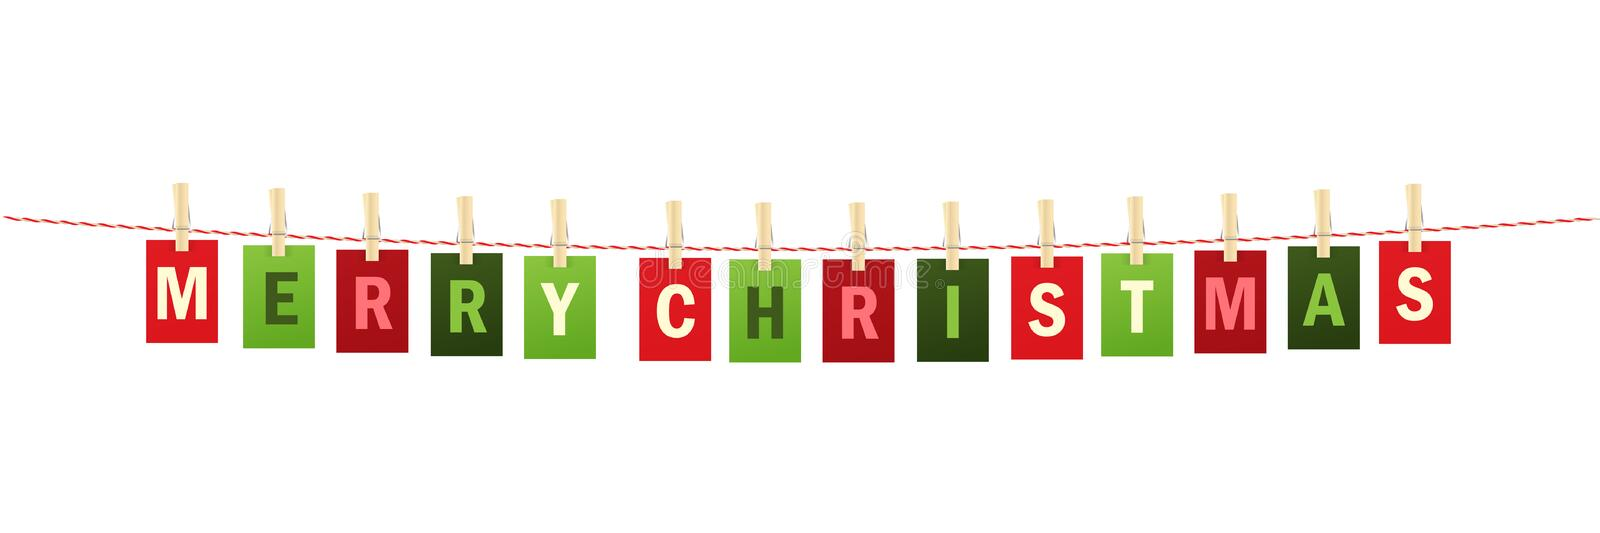 MERRY CHRISTMAS colorful letters pinned to string with pegs stock photo